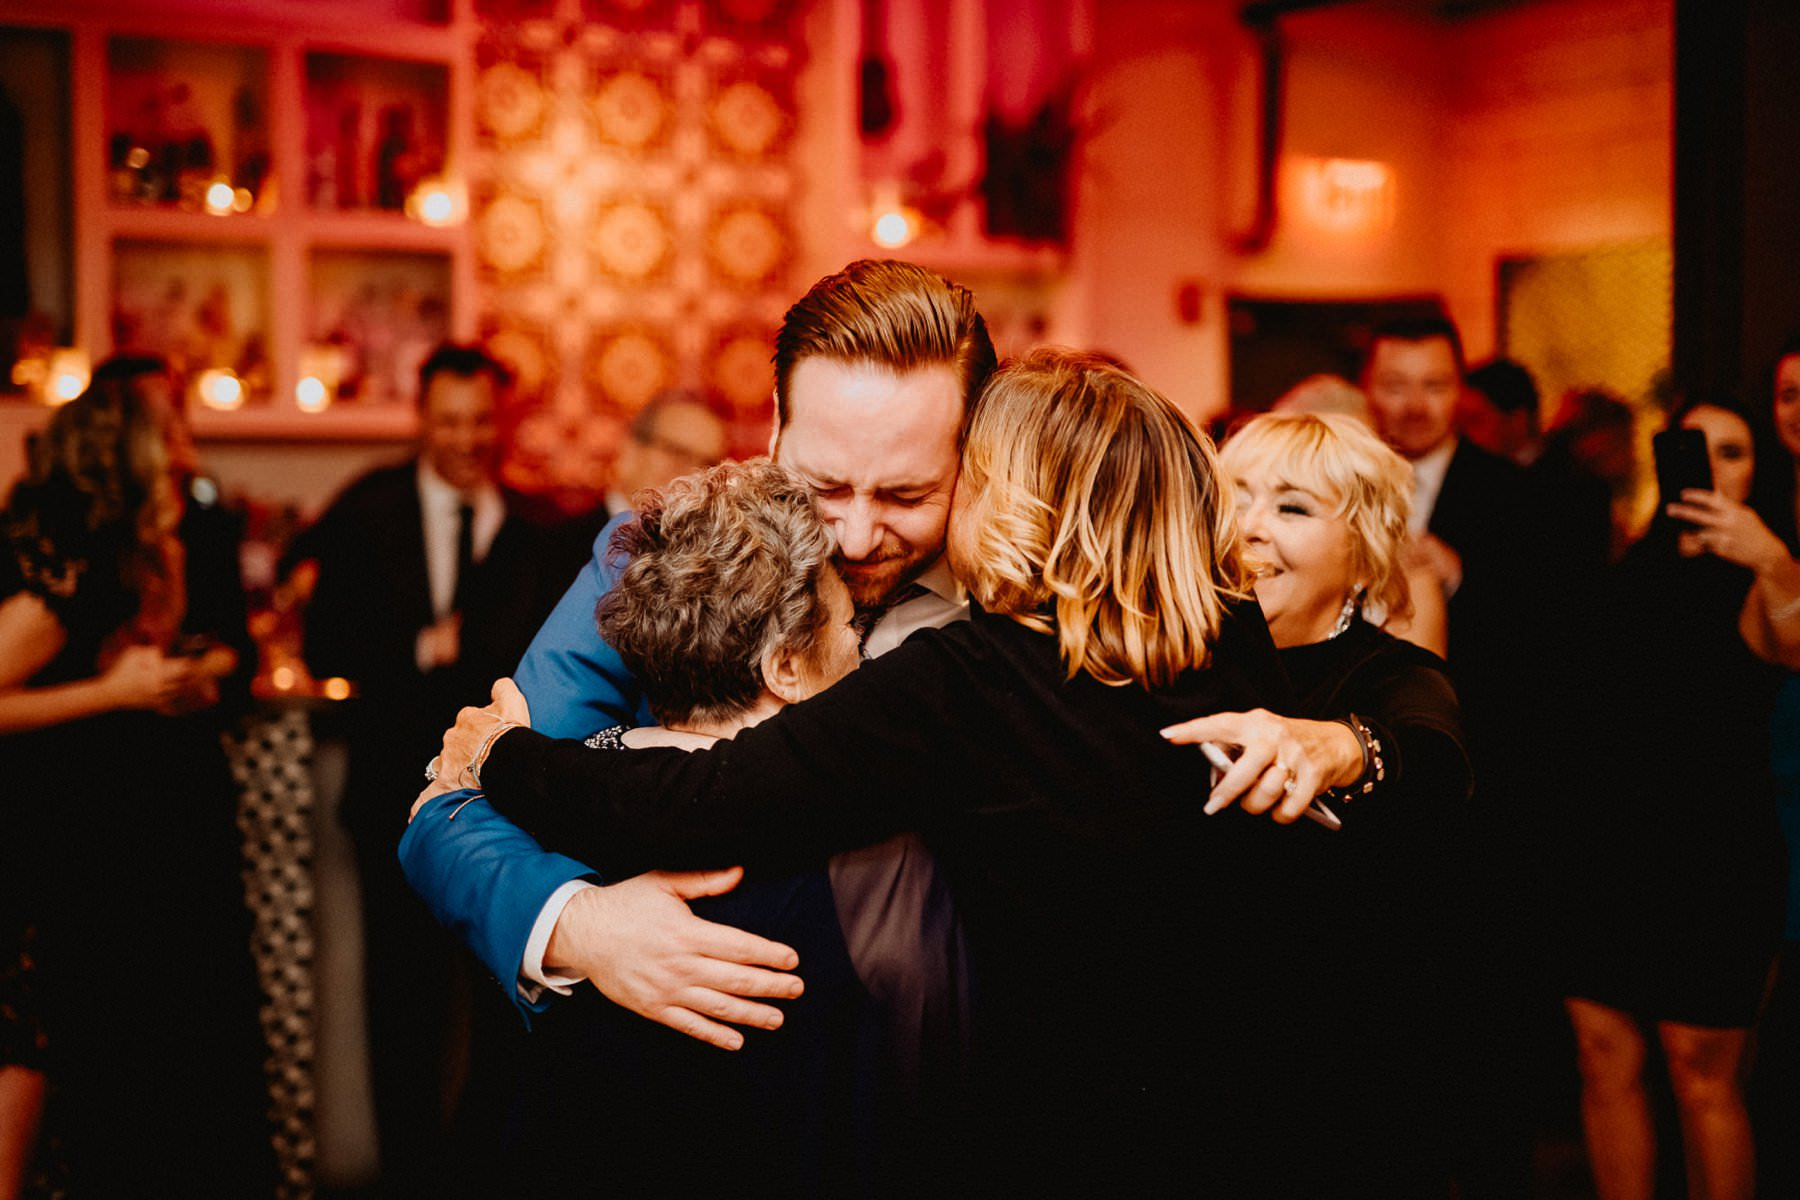 mission_taqueria_philly_wedding-88.jpg